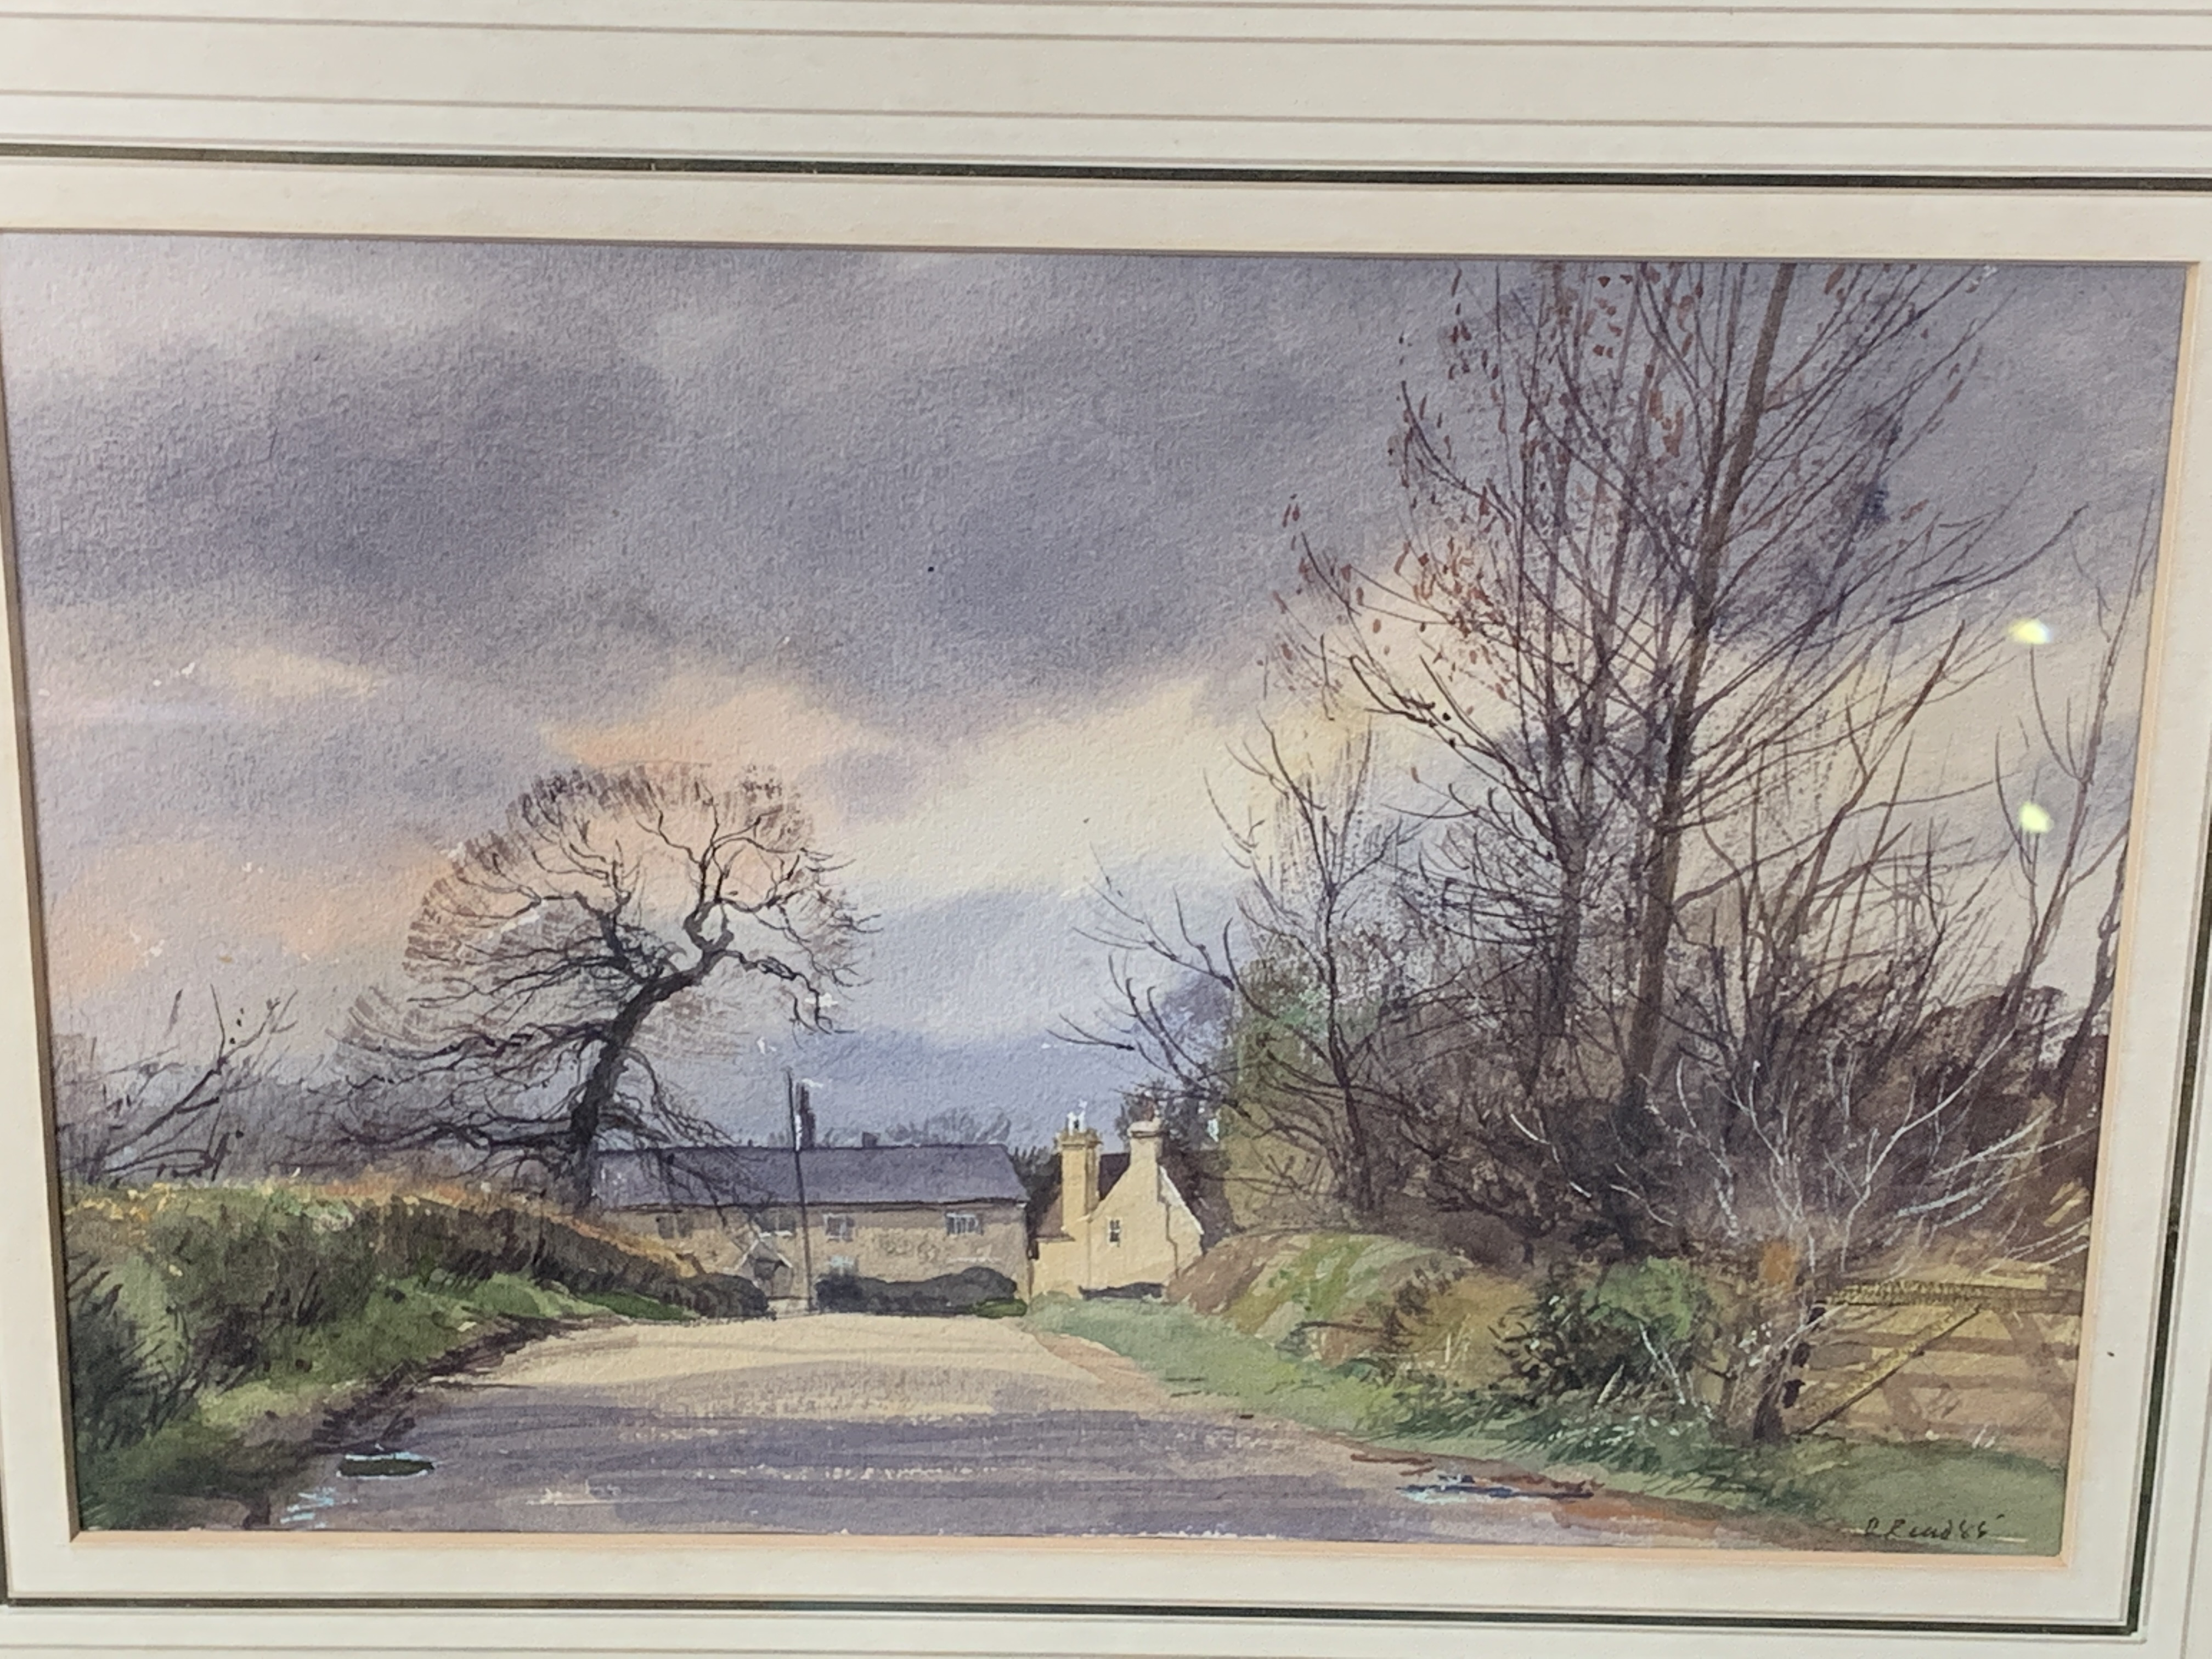 Framed and glazed watercolour, signed and dated R. Read '85 - Image 3 of 3